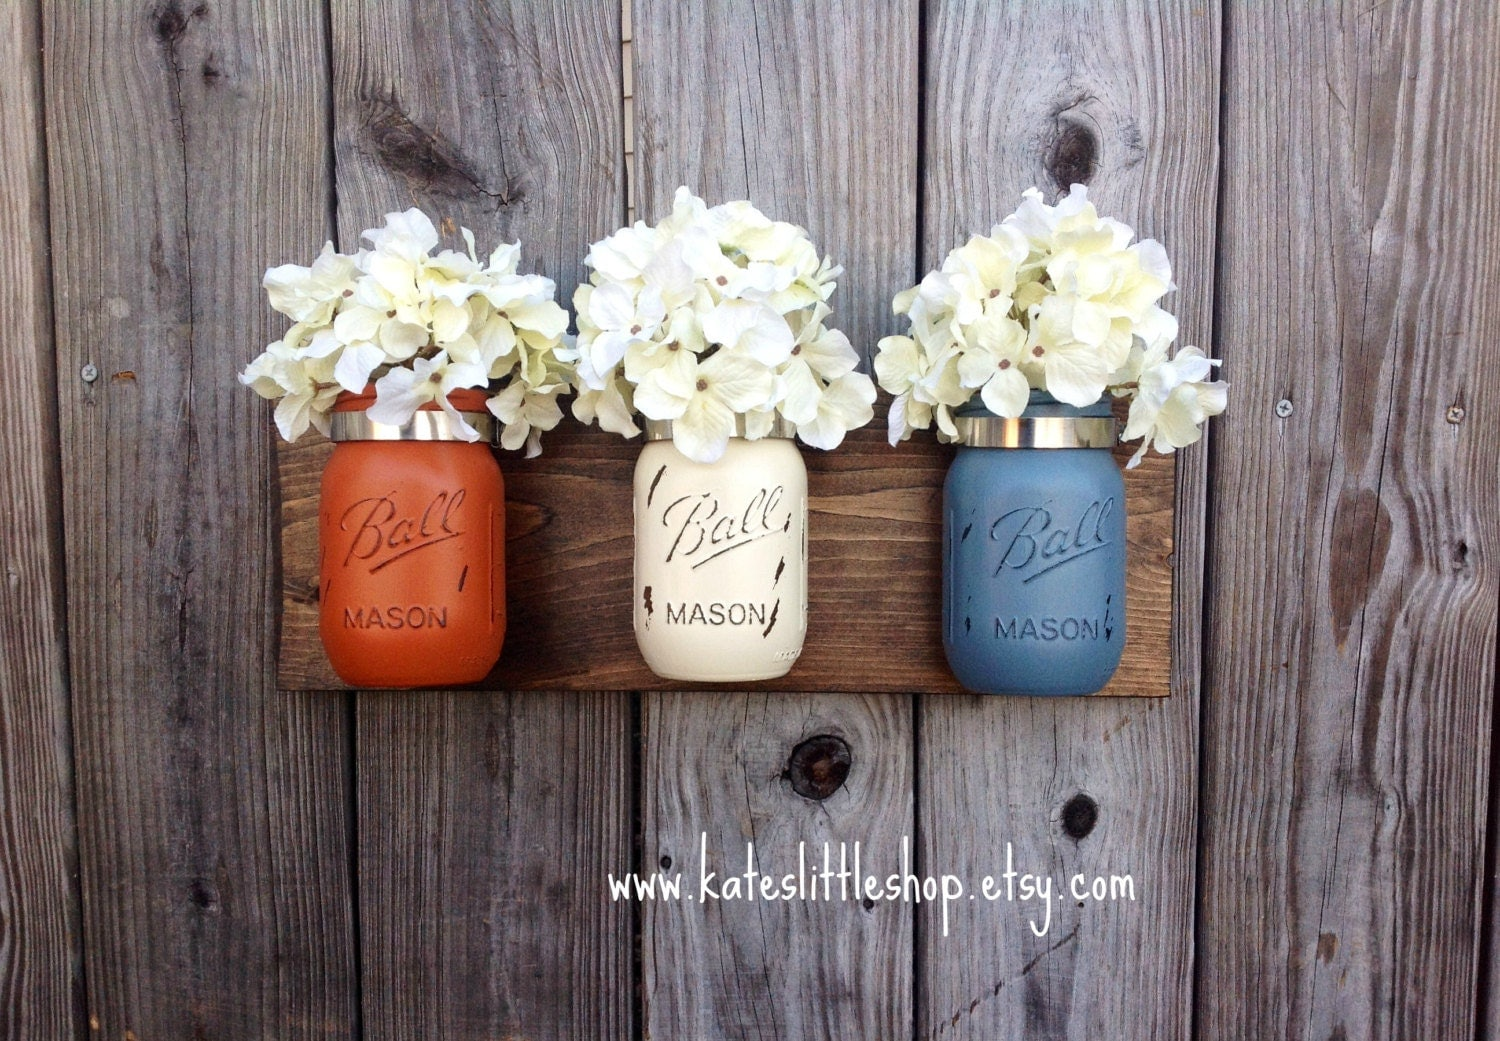 Wall Decor With Mason Jars : Set of pint size mason jar wall decor hanging rustic